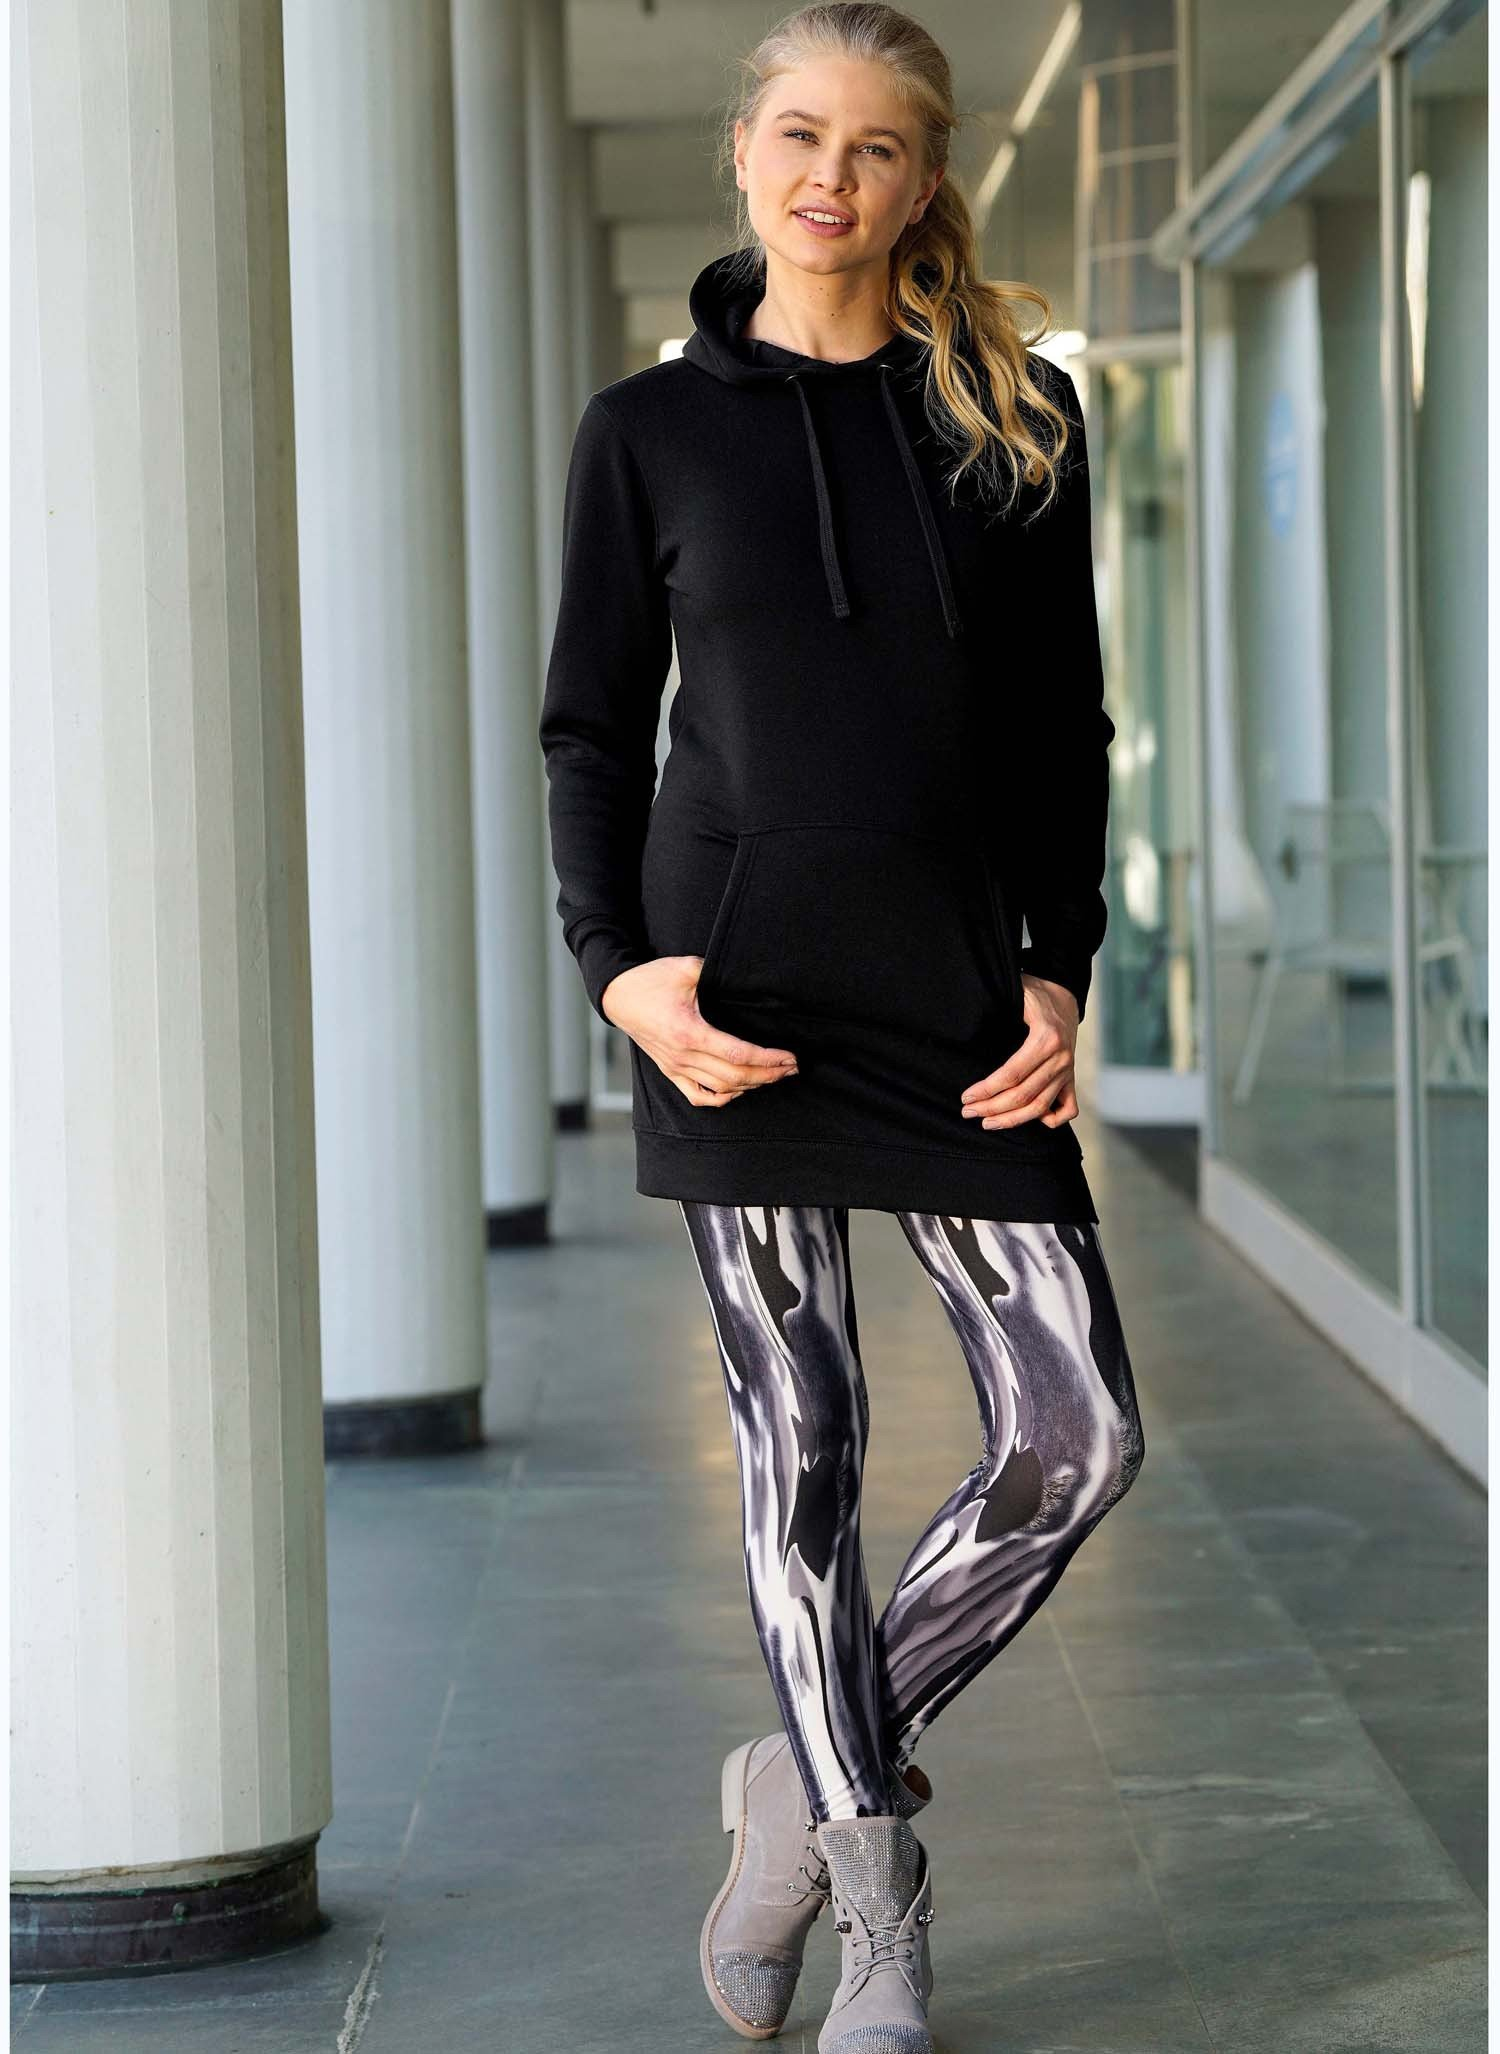 D-Leggings,Rosen multicolors XL 058 - 2 - Ronja.ch